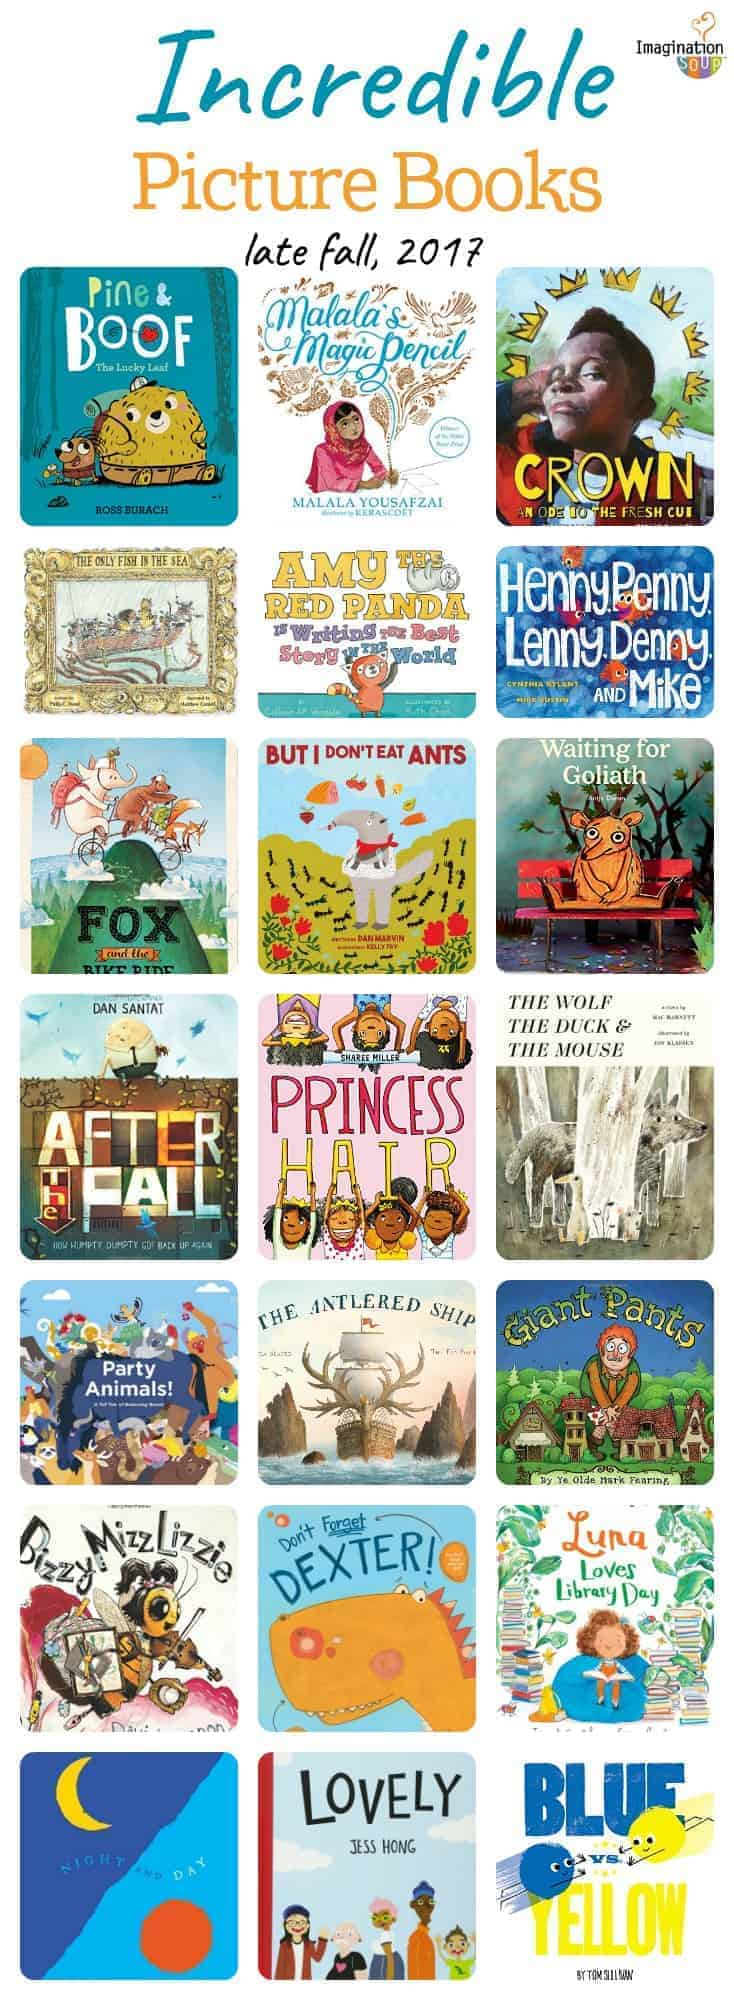 teachers and parents, you won't want to miss these incredible new picture books (fall 2017)